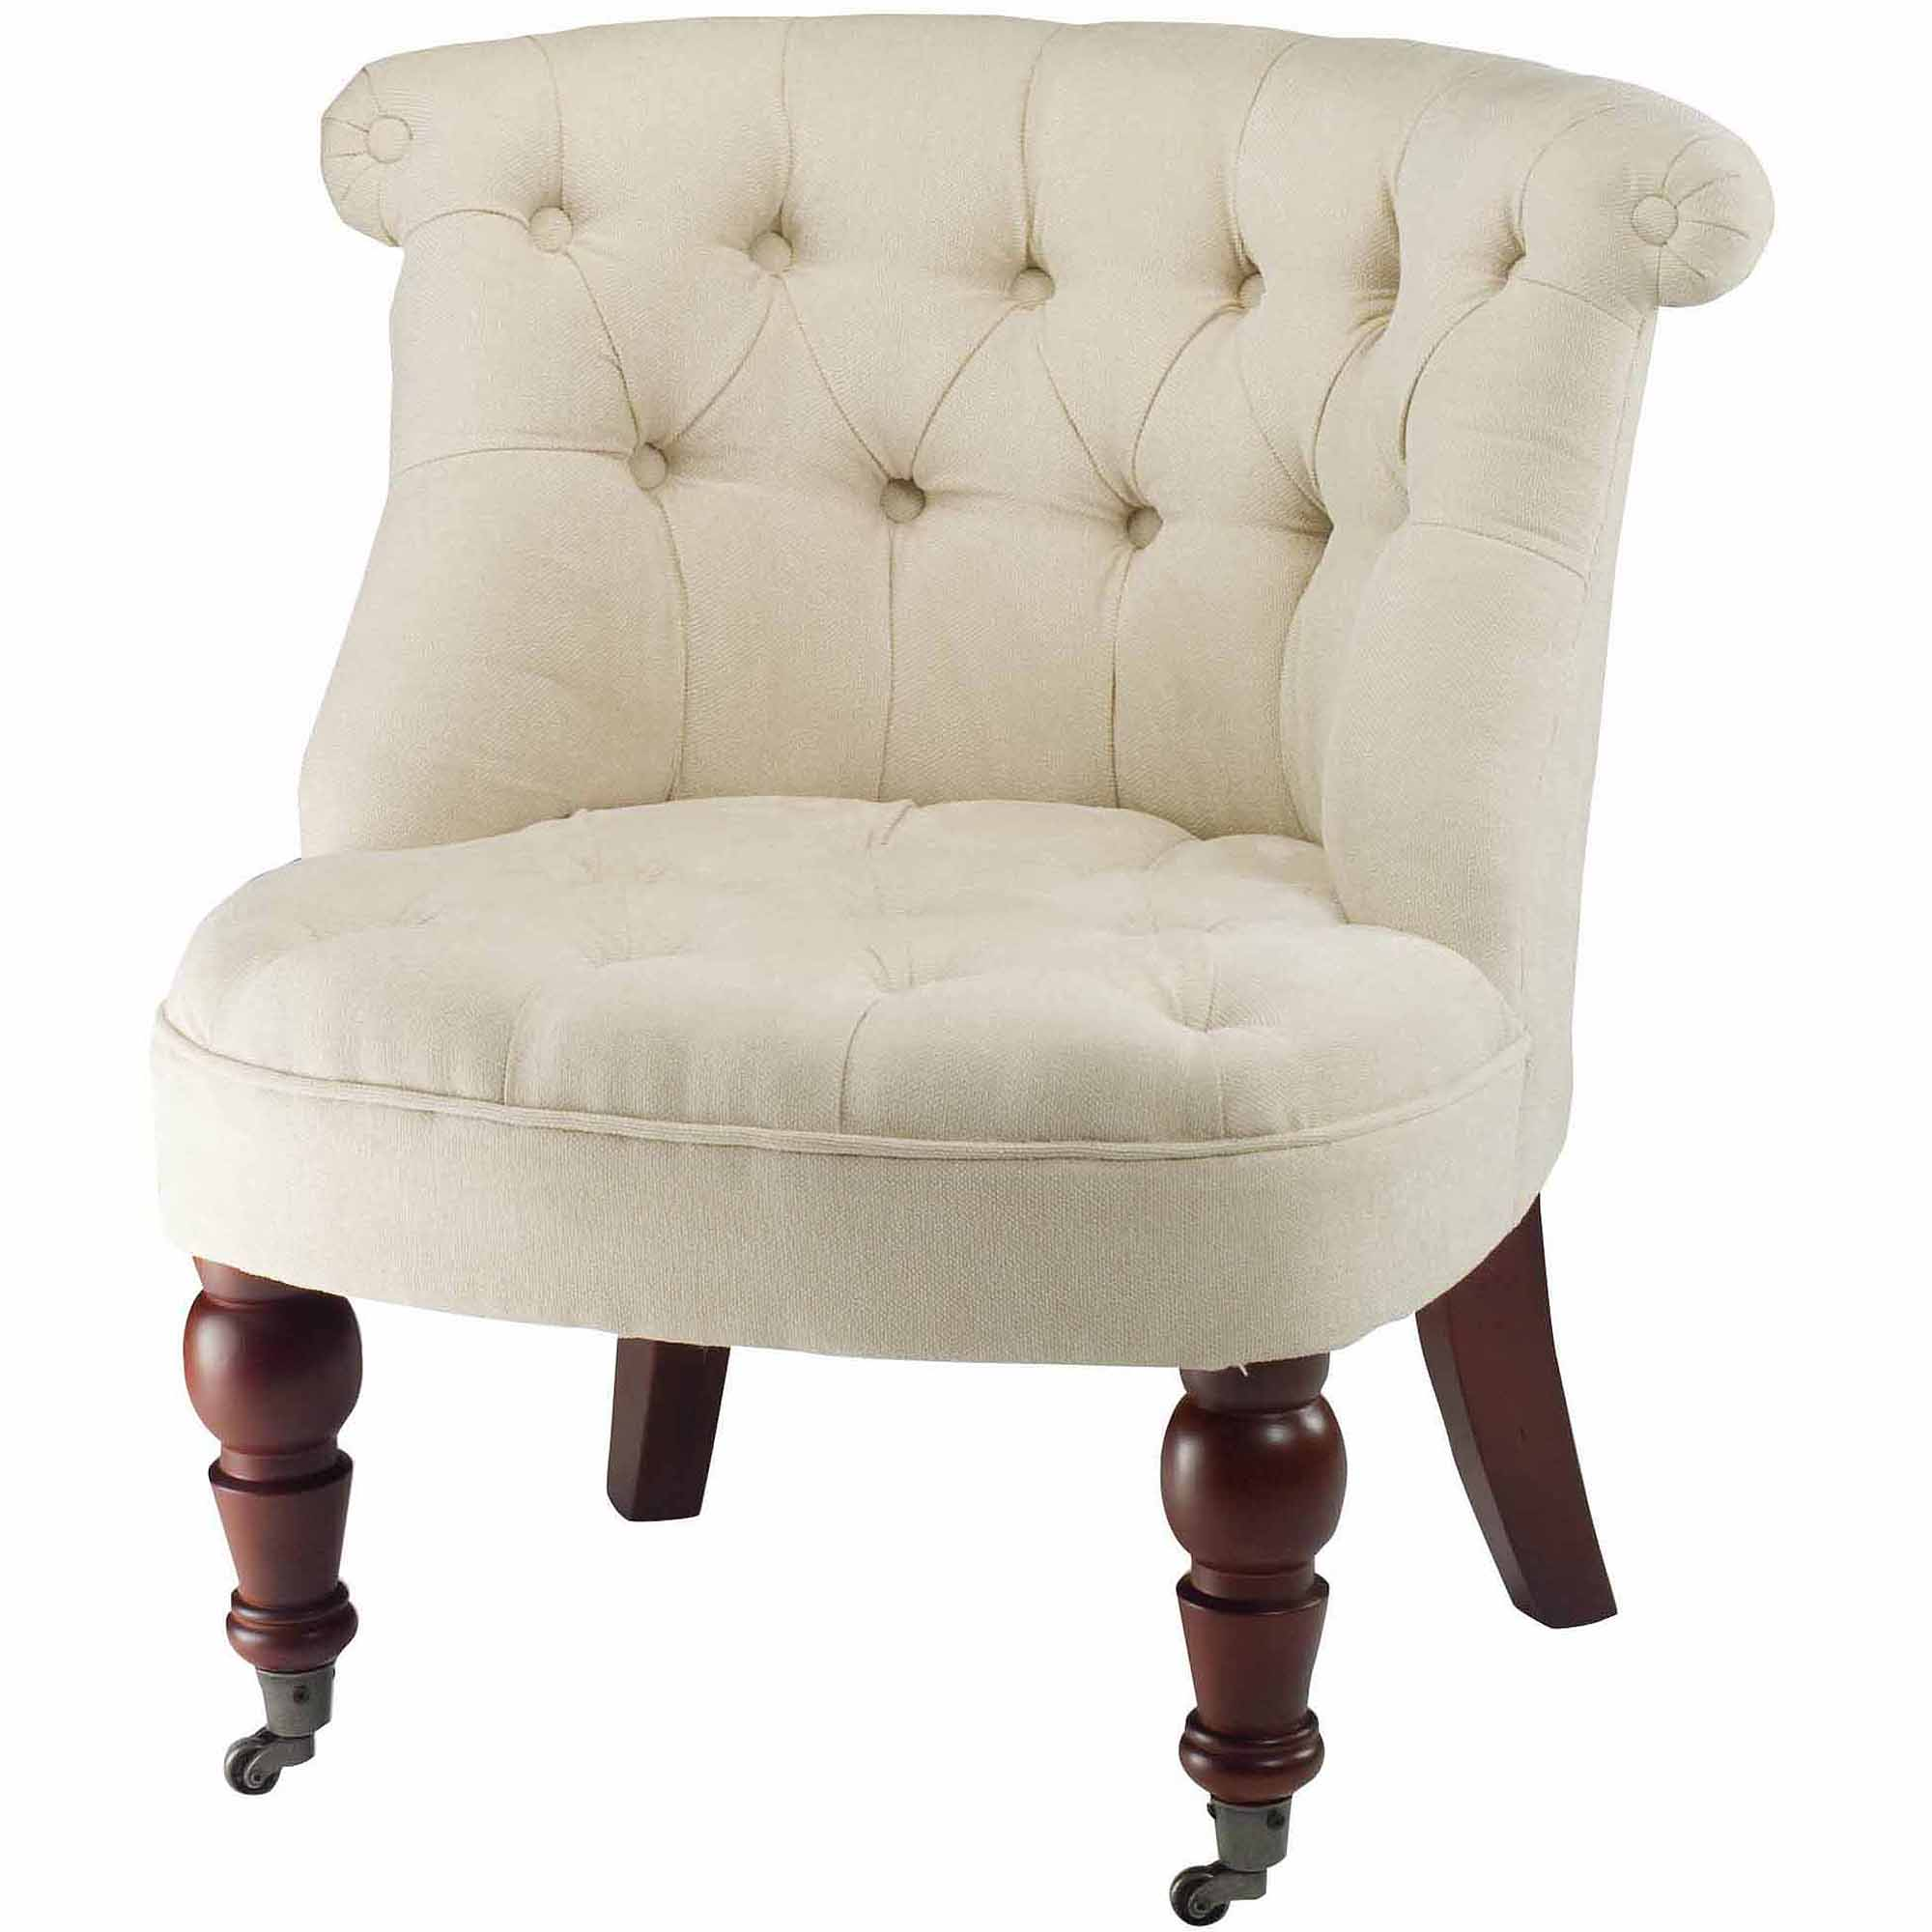 Safavieh Baby Tufted Chair, Multiple Colors